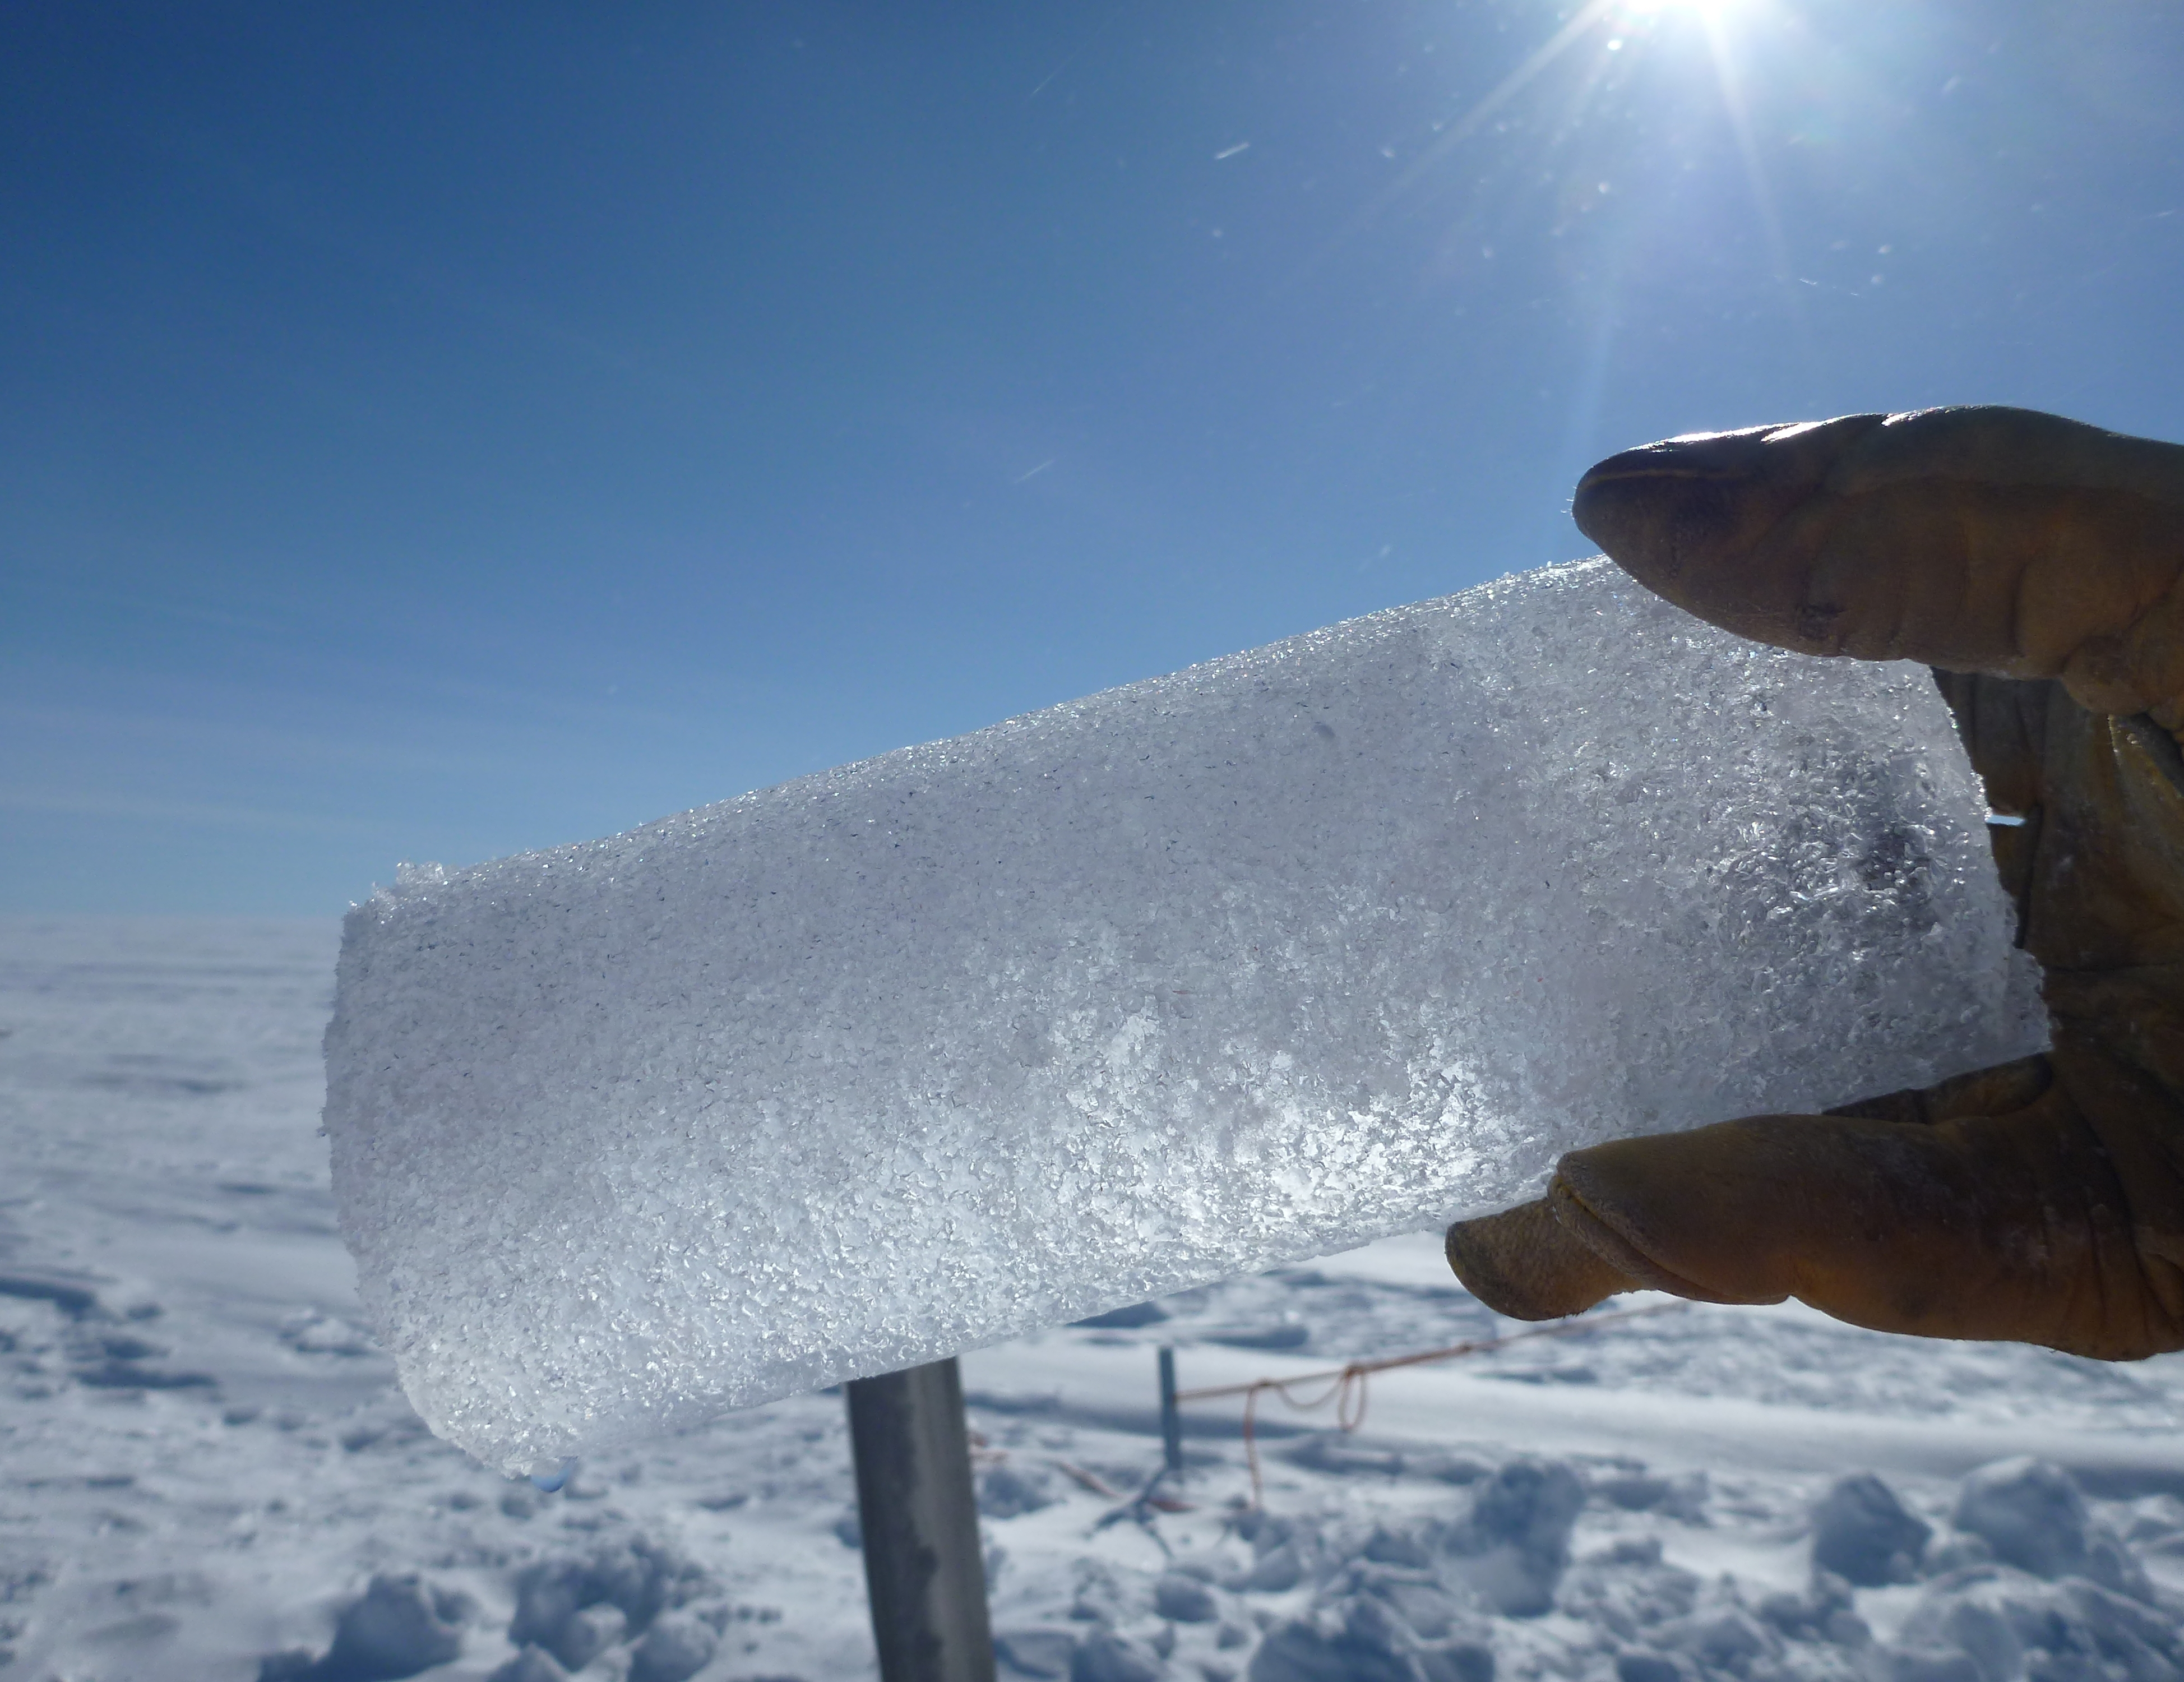 dating greenland ice cores The 210 pb dating method is applied to deep thermally recovered firn-ice cores from the north greenland ice sheet the 210 pb activity is found to decay exponentially with depth (expressed in water equivalent.